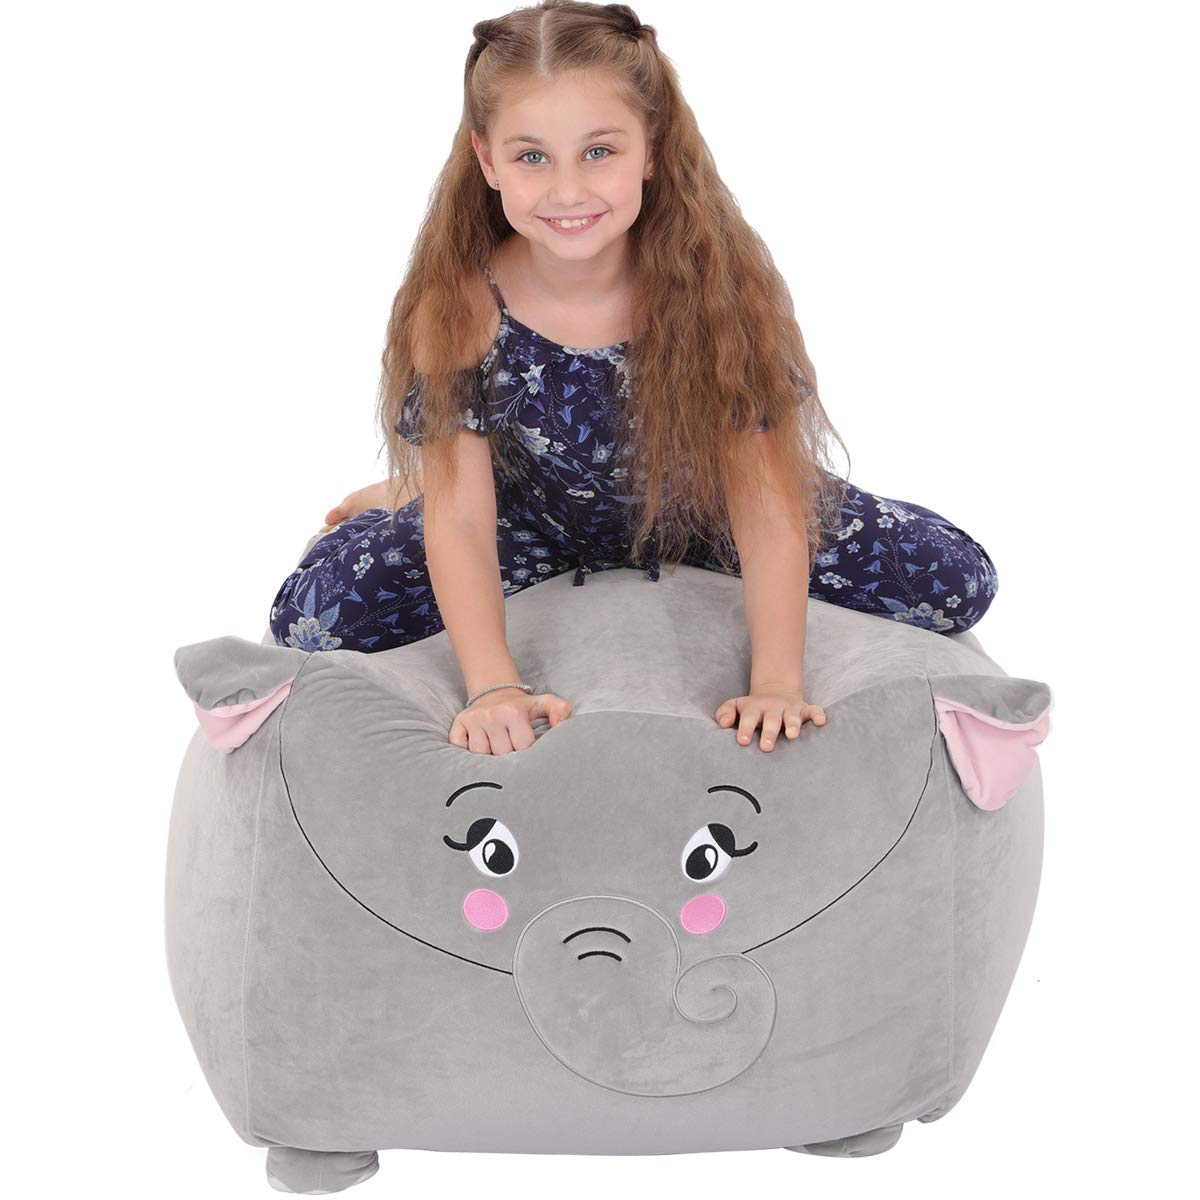 youngeyee Giant Elephant Stuffed Animal Storage Kids Bean Bag Chair, 24x24x20 Inches Velvet Toy Organization and Storage Zipper Bags for Plush Toy Pillows Blankets Towels Clothes by youngeyee